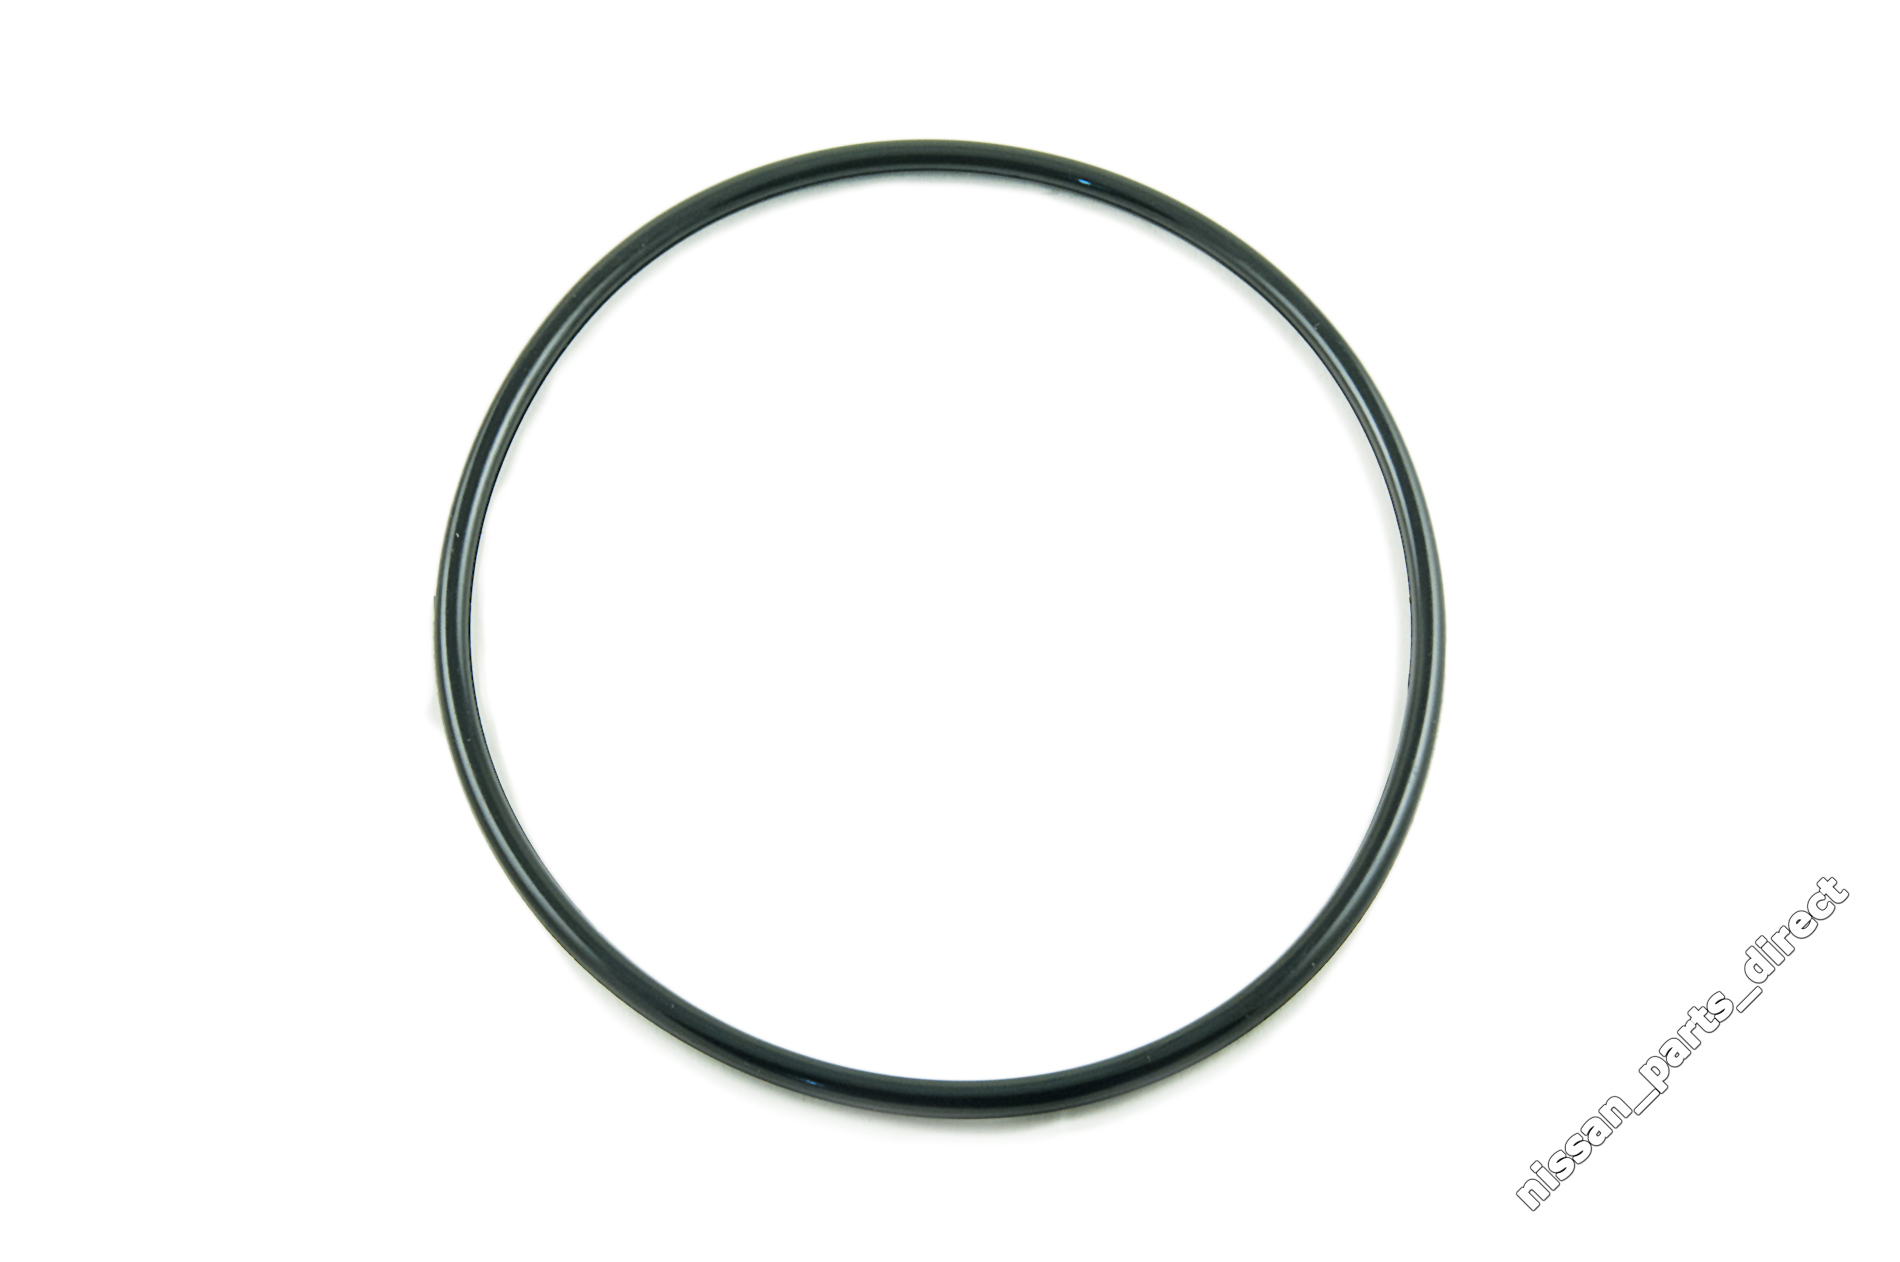 Genuine Nissan 350z Car Replacement Fuel Pump Gas Tank O Ring Gasket A00